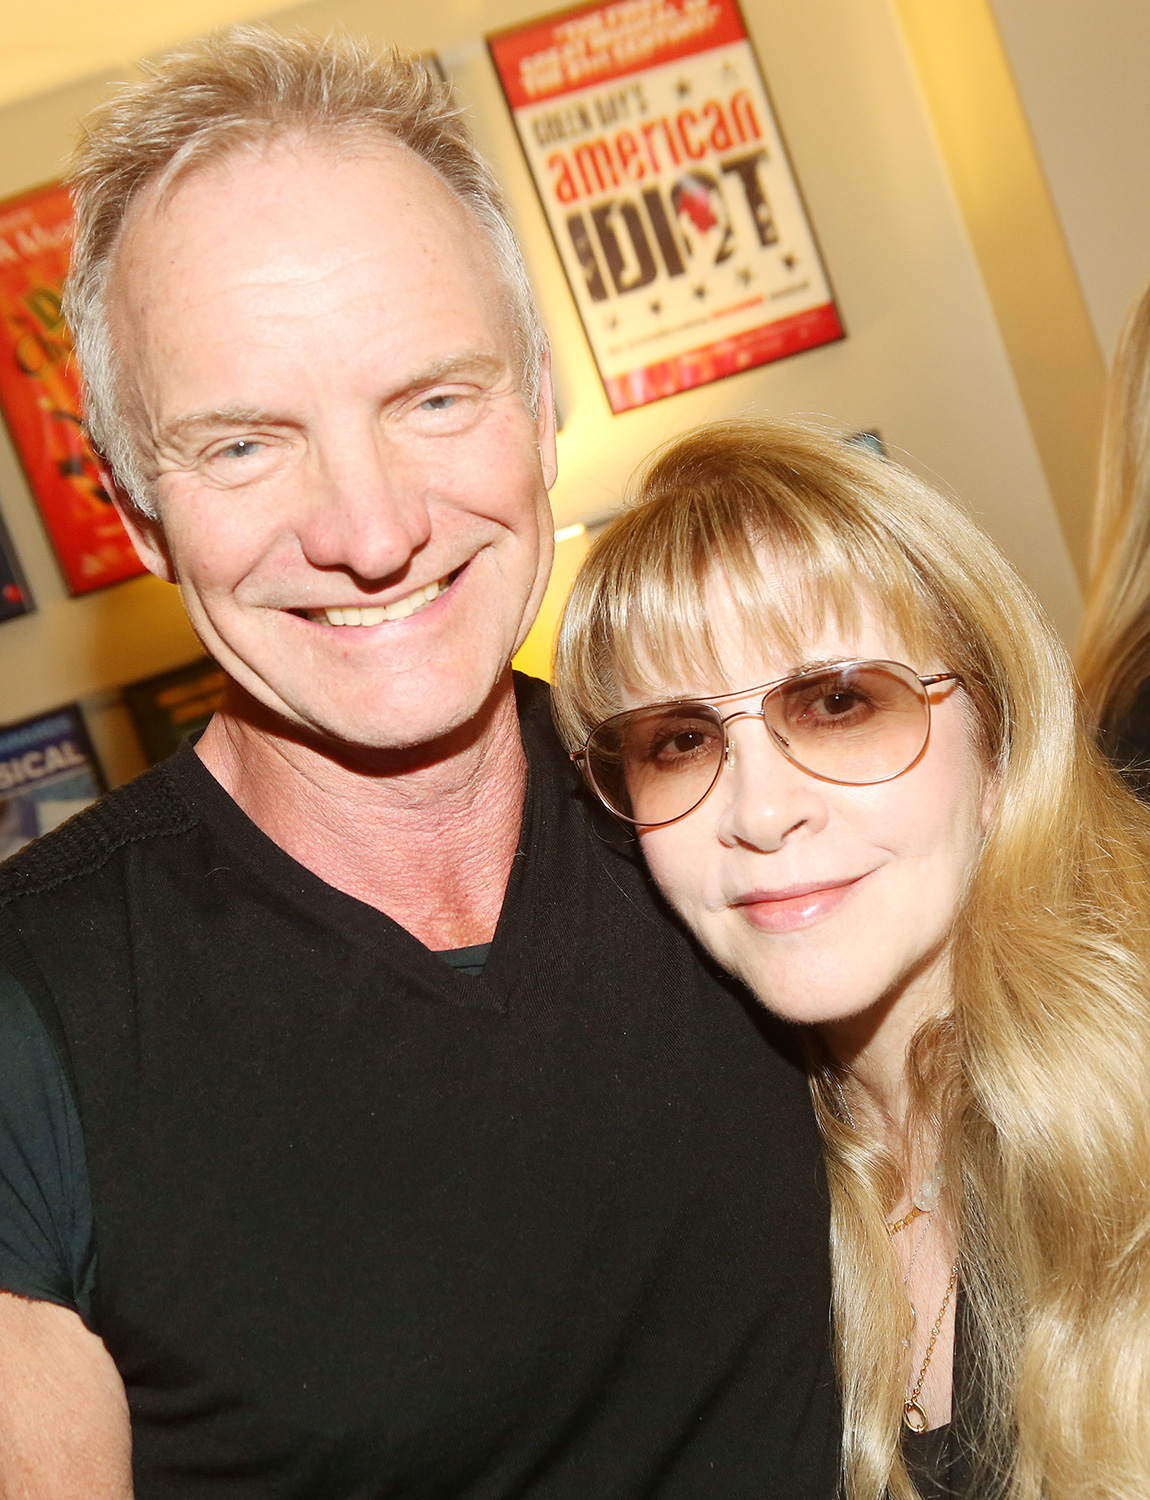 """Sting and Stevie Nicks pose backstage at the musical """"The Last Ship"""" at The Ahmanson Theatre on February 11, 2020 in Los Angeles, California"""